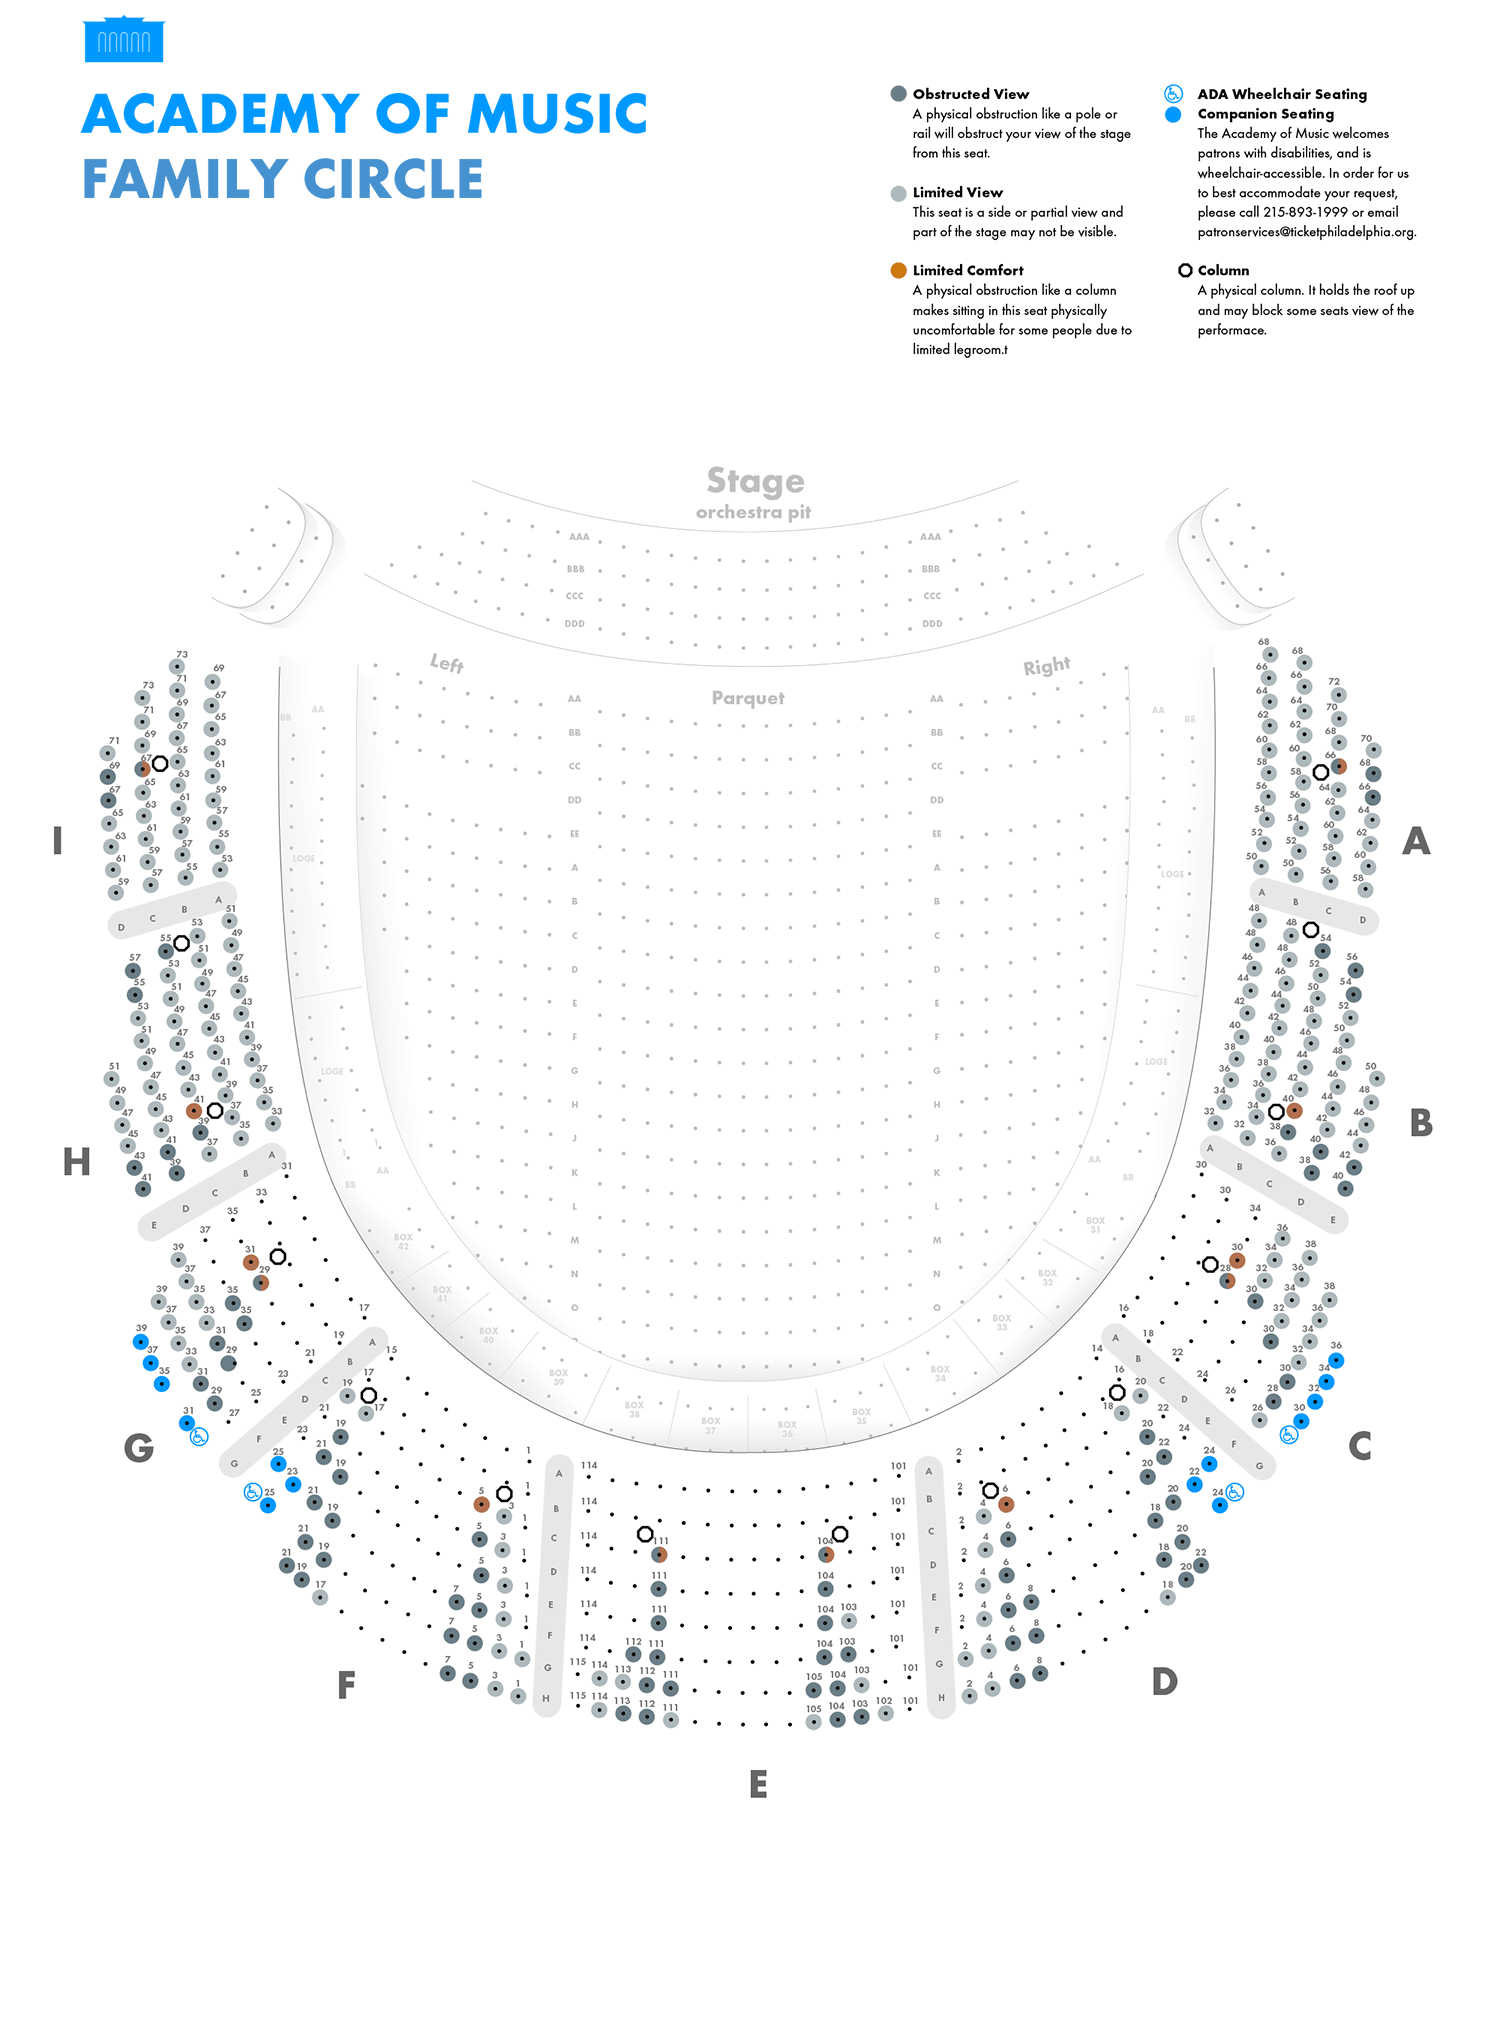 academy of music broadway seating charts kimmel center. Black Bedroom Furniture Sets. Home Design Ideas